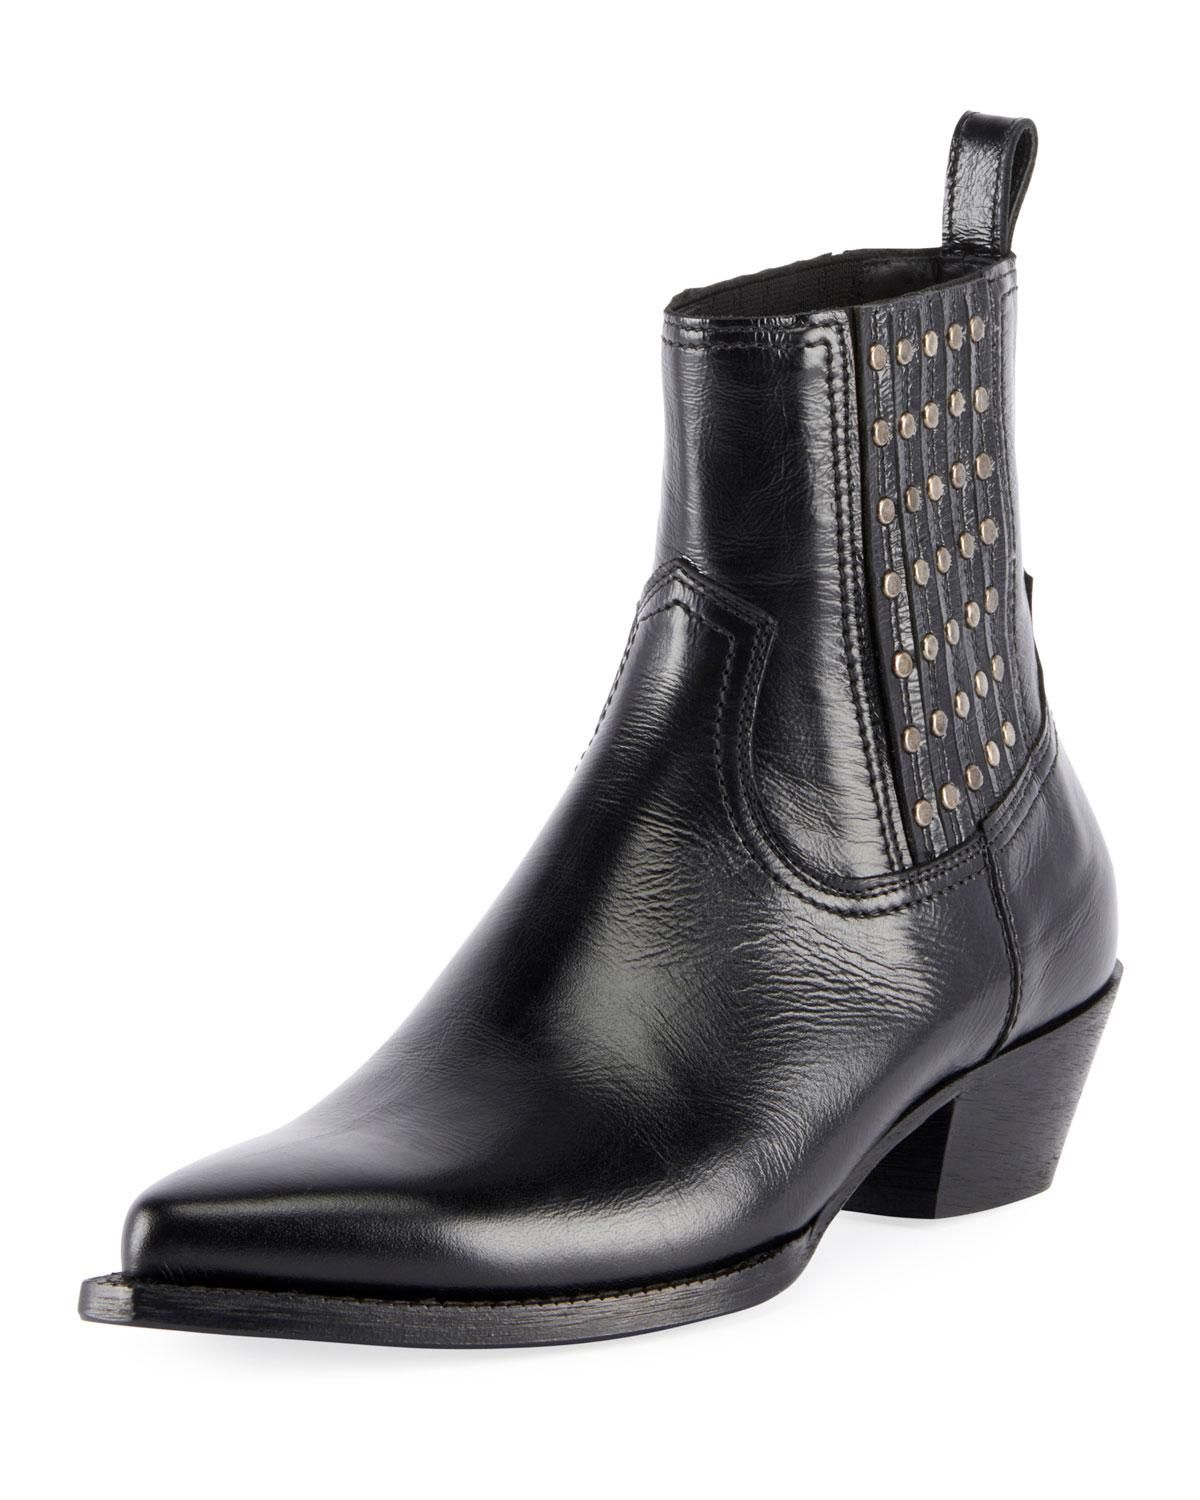 cc93dbbd449 Saint Laurent Lukas Studded Leather Booties In Black | ModeSens